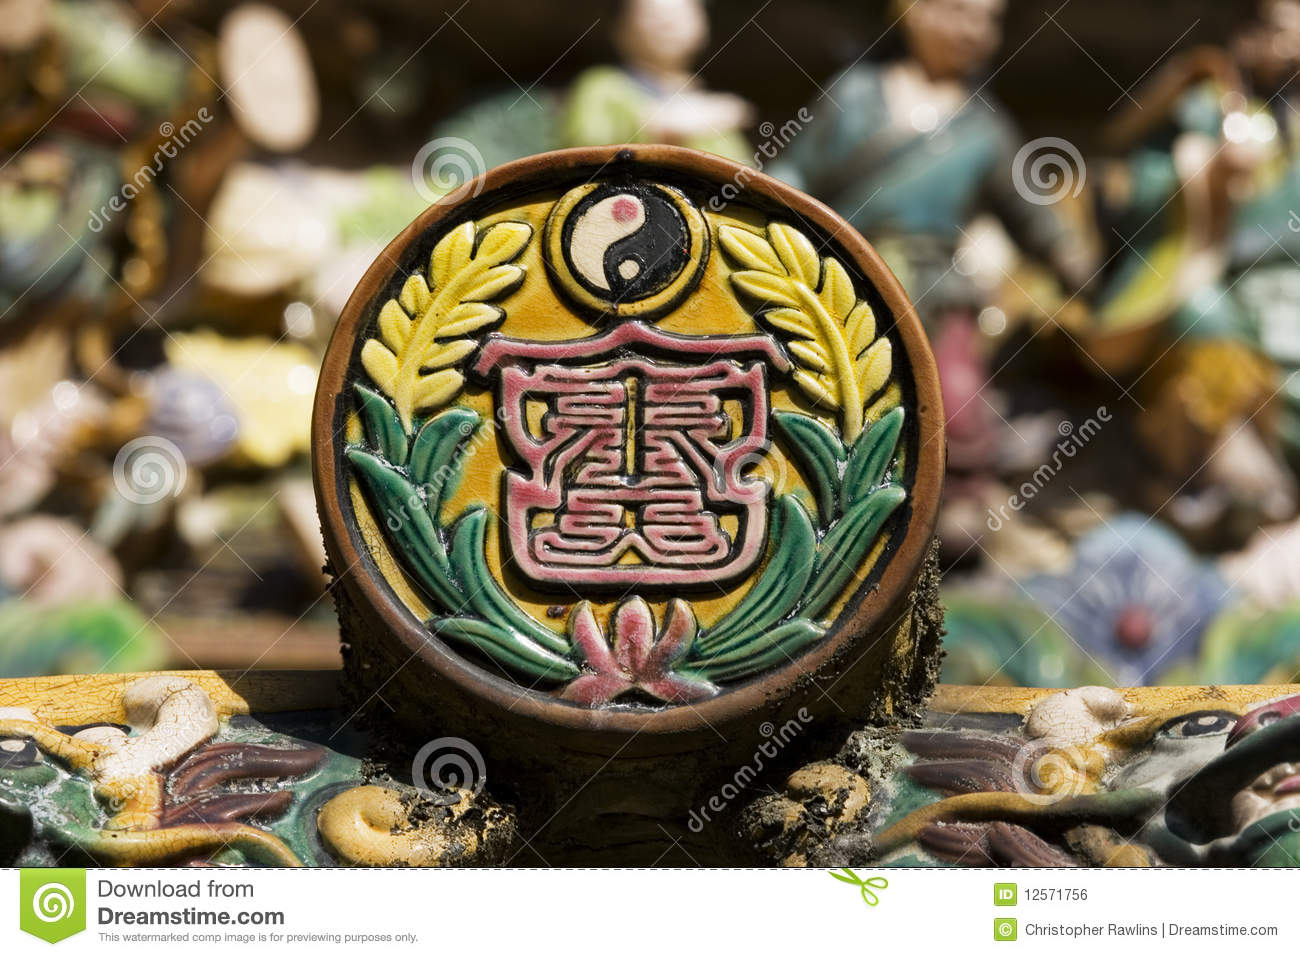 Pottery of Traditional Chinese life